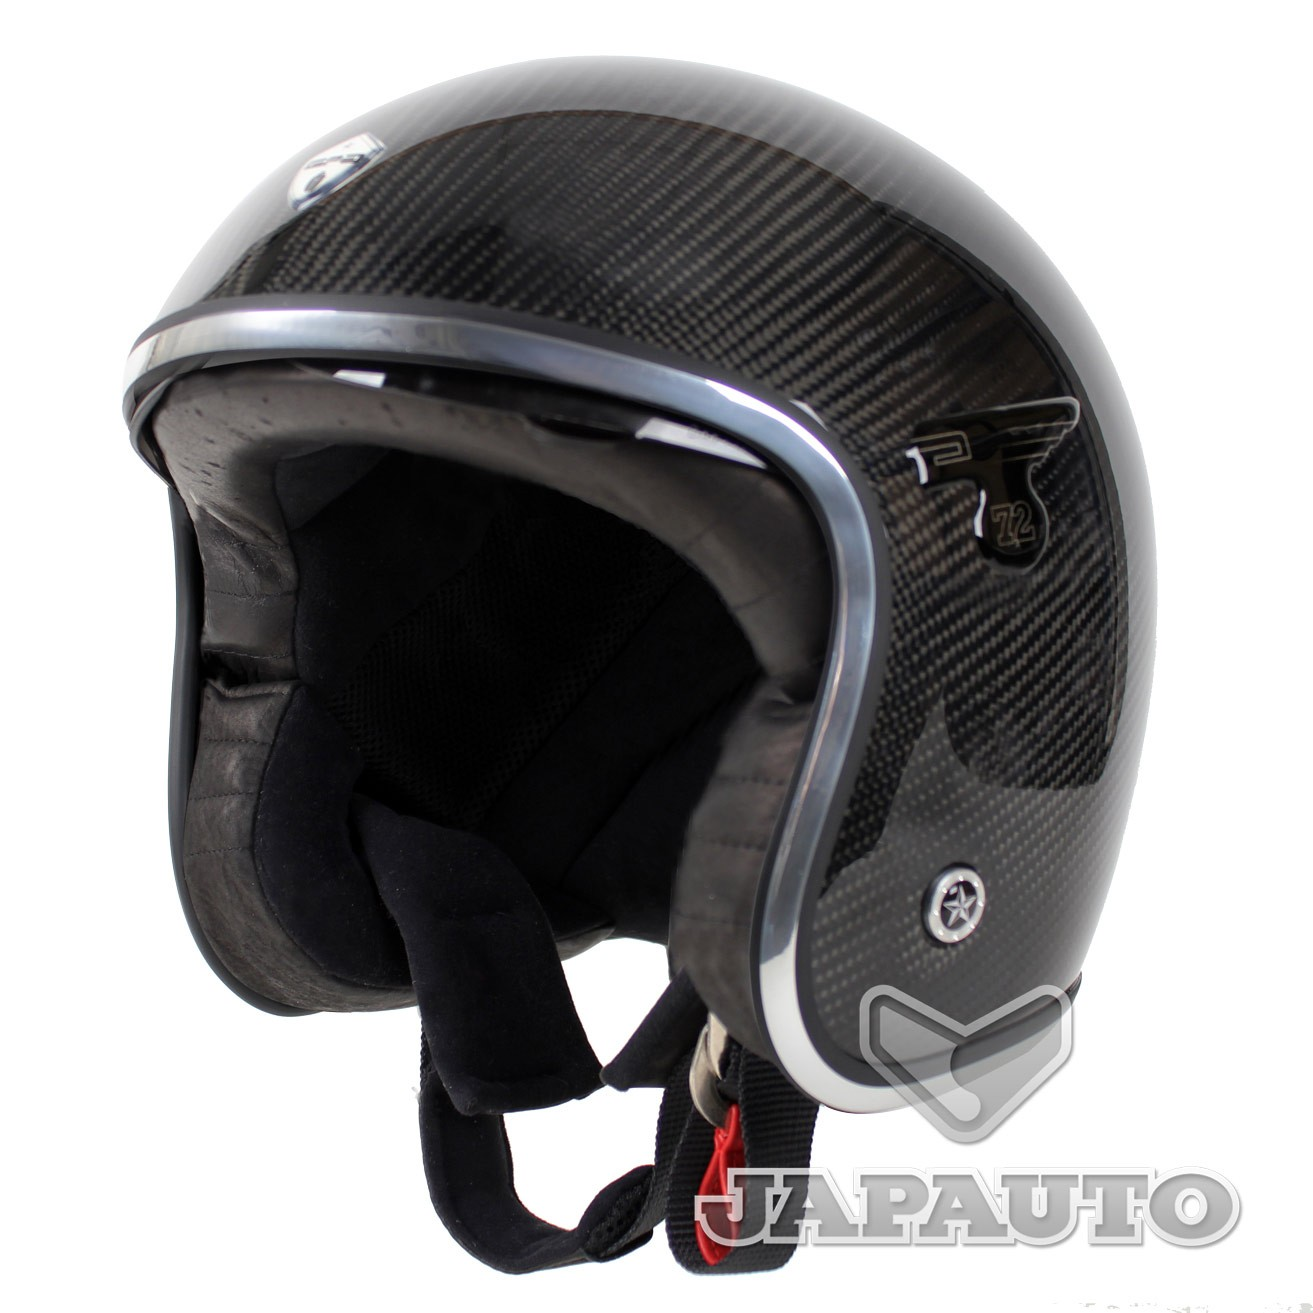 casque jet gpa carbon solar carbone japauto accessoires equipement pilote pour moto et scooter. Black Bedroom Furniture Sets. Home Design Ideas